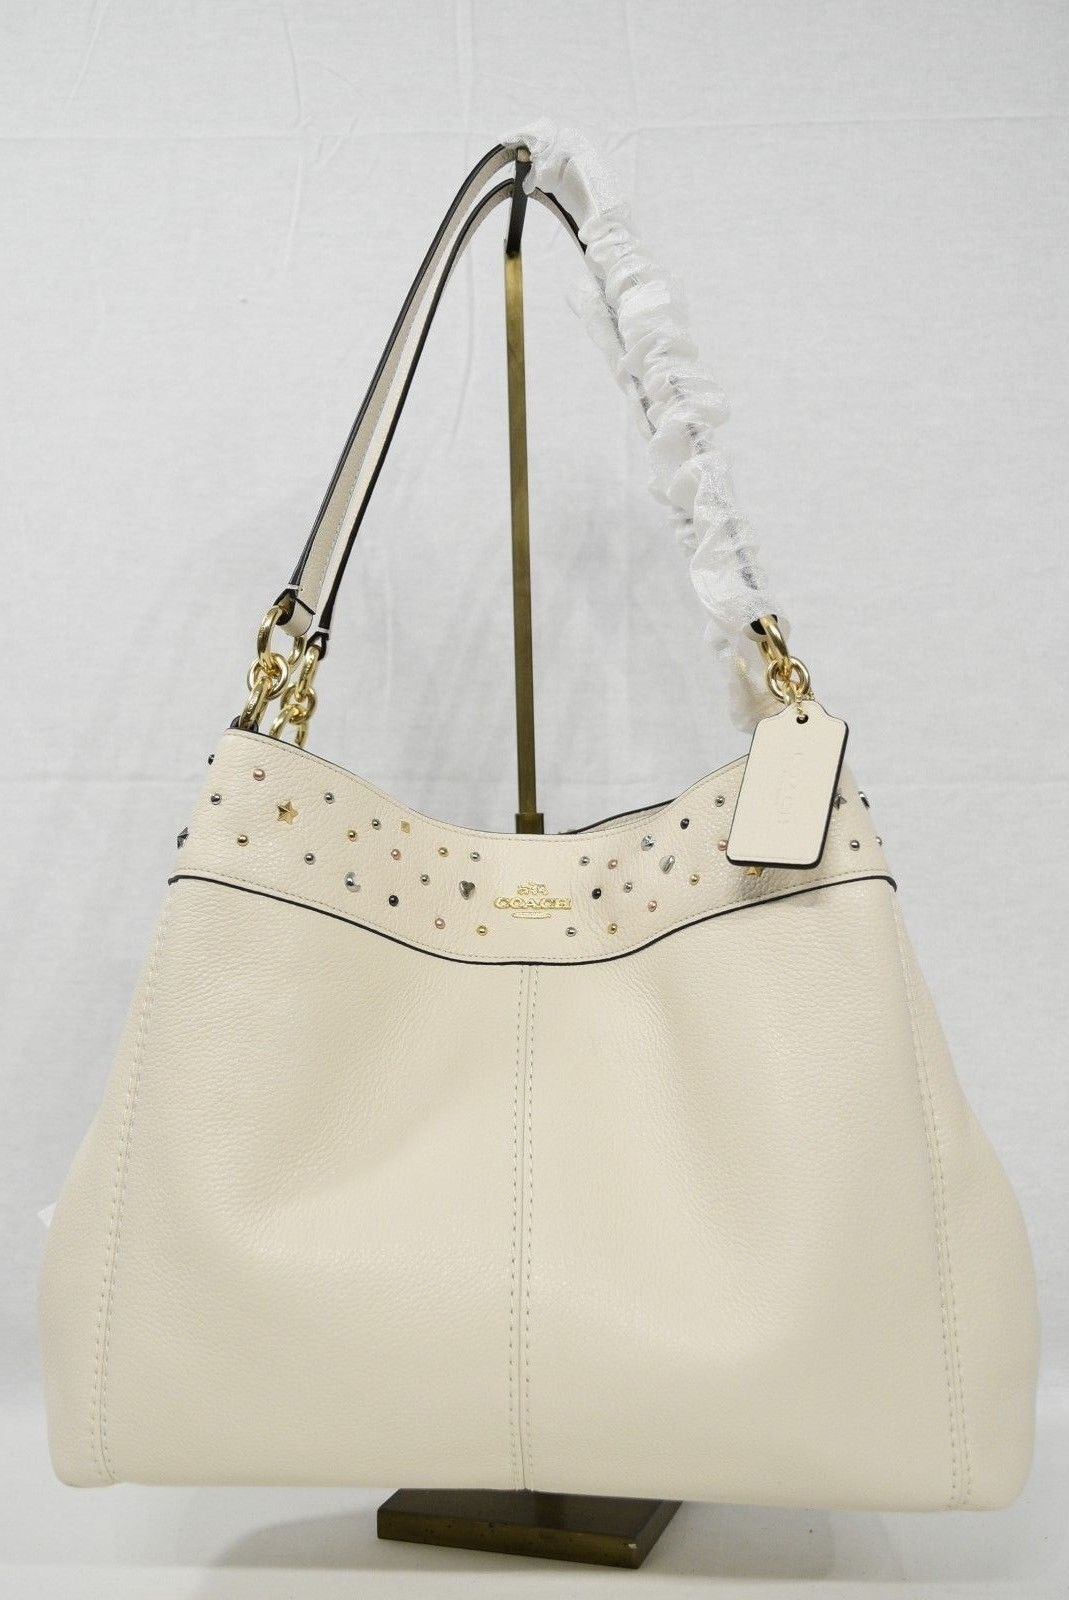 df86821df700 S l1600. S l1600. Previous. NWT Coach F22314 Stardust Studded Leather Lexy  Shoulder Bag in Chalk - Off White